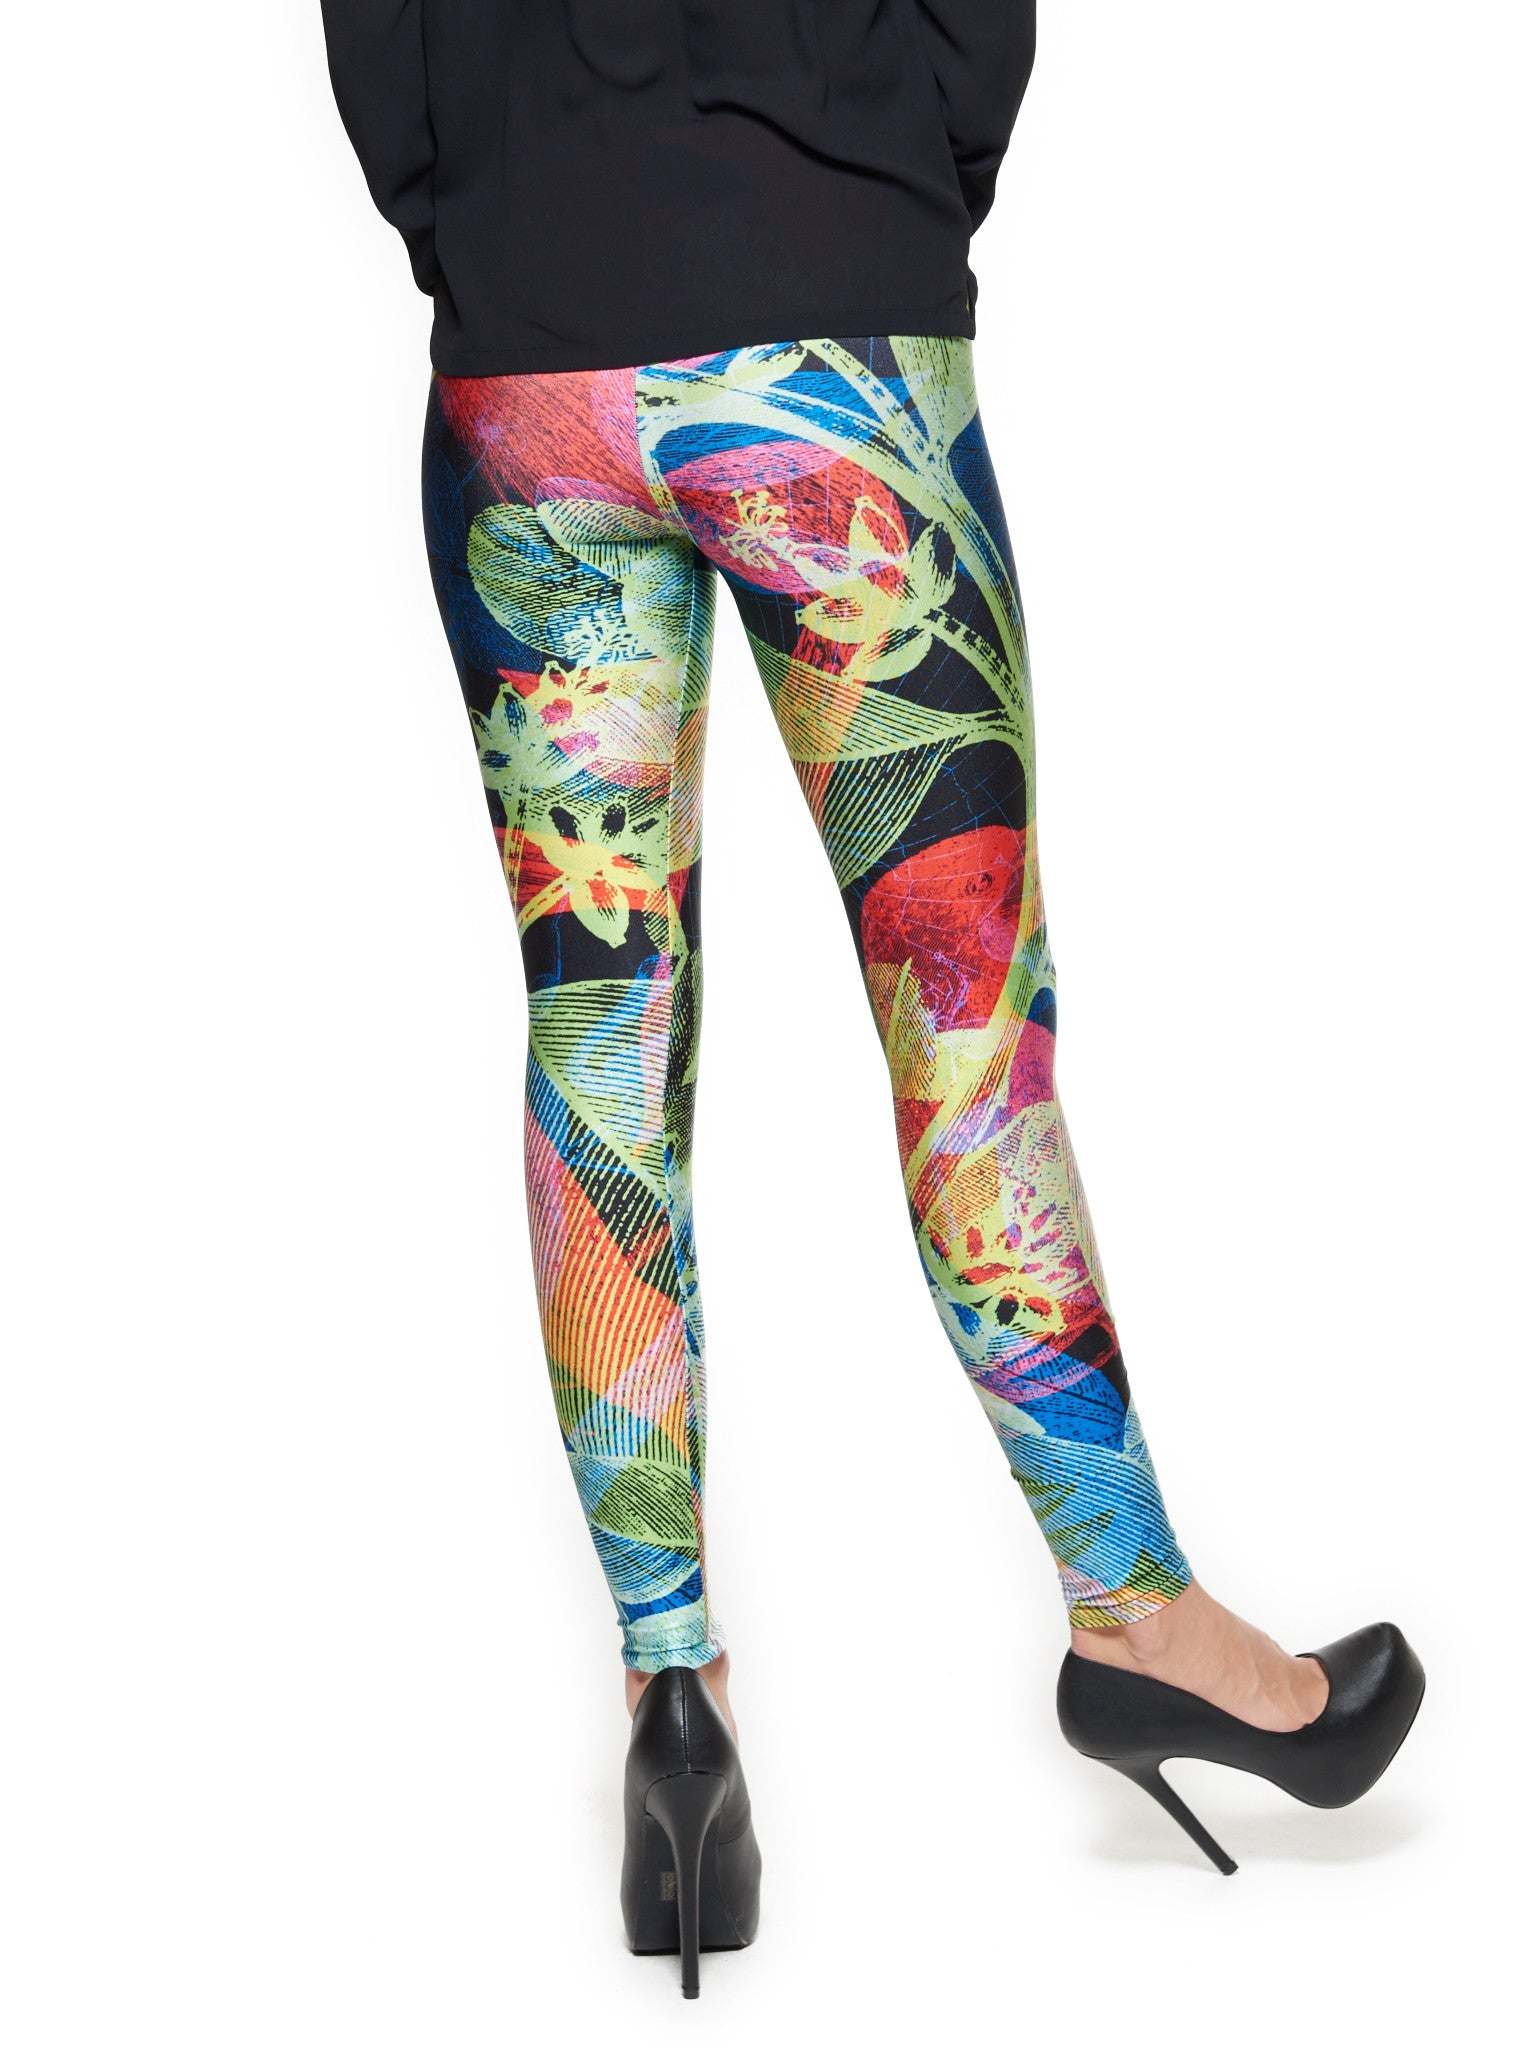 Selva Black Queen West Leggings - Nuvango  - 3